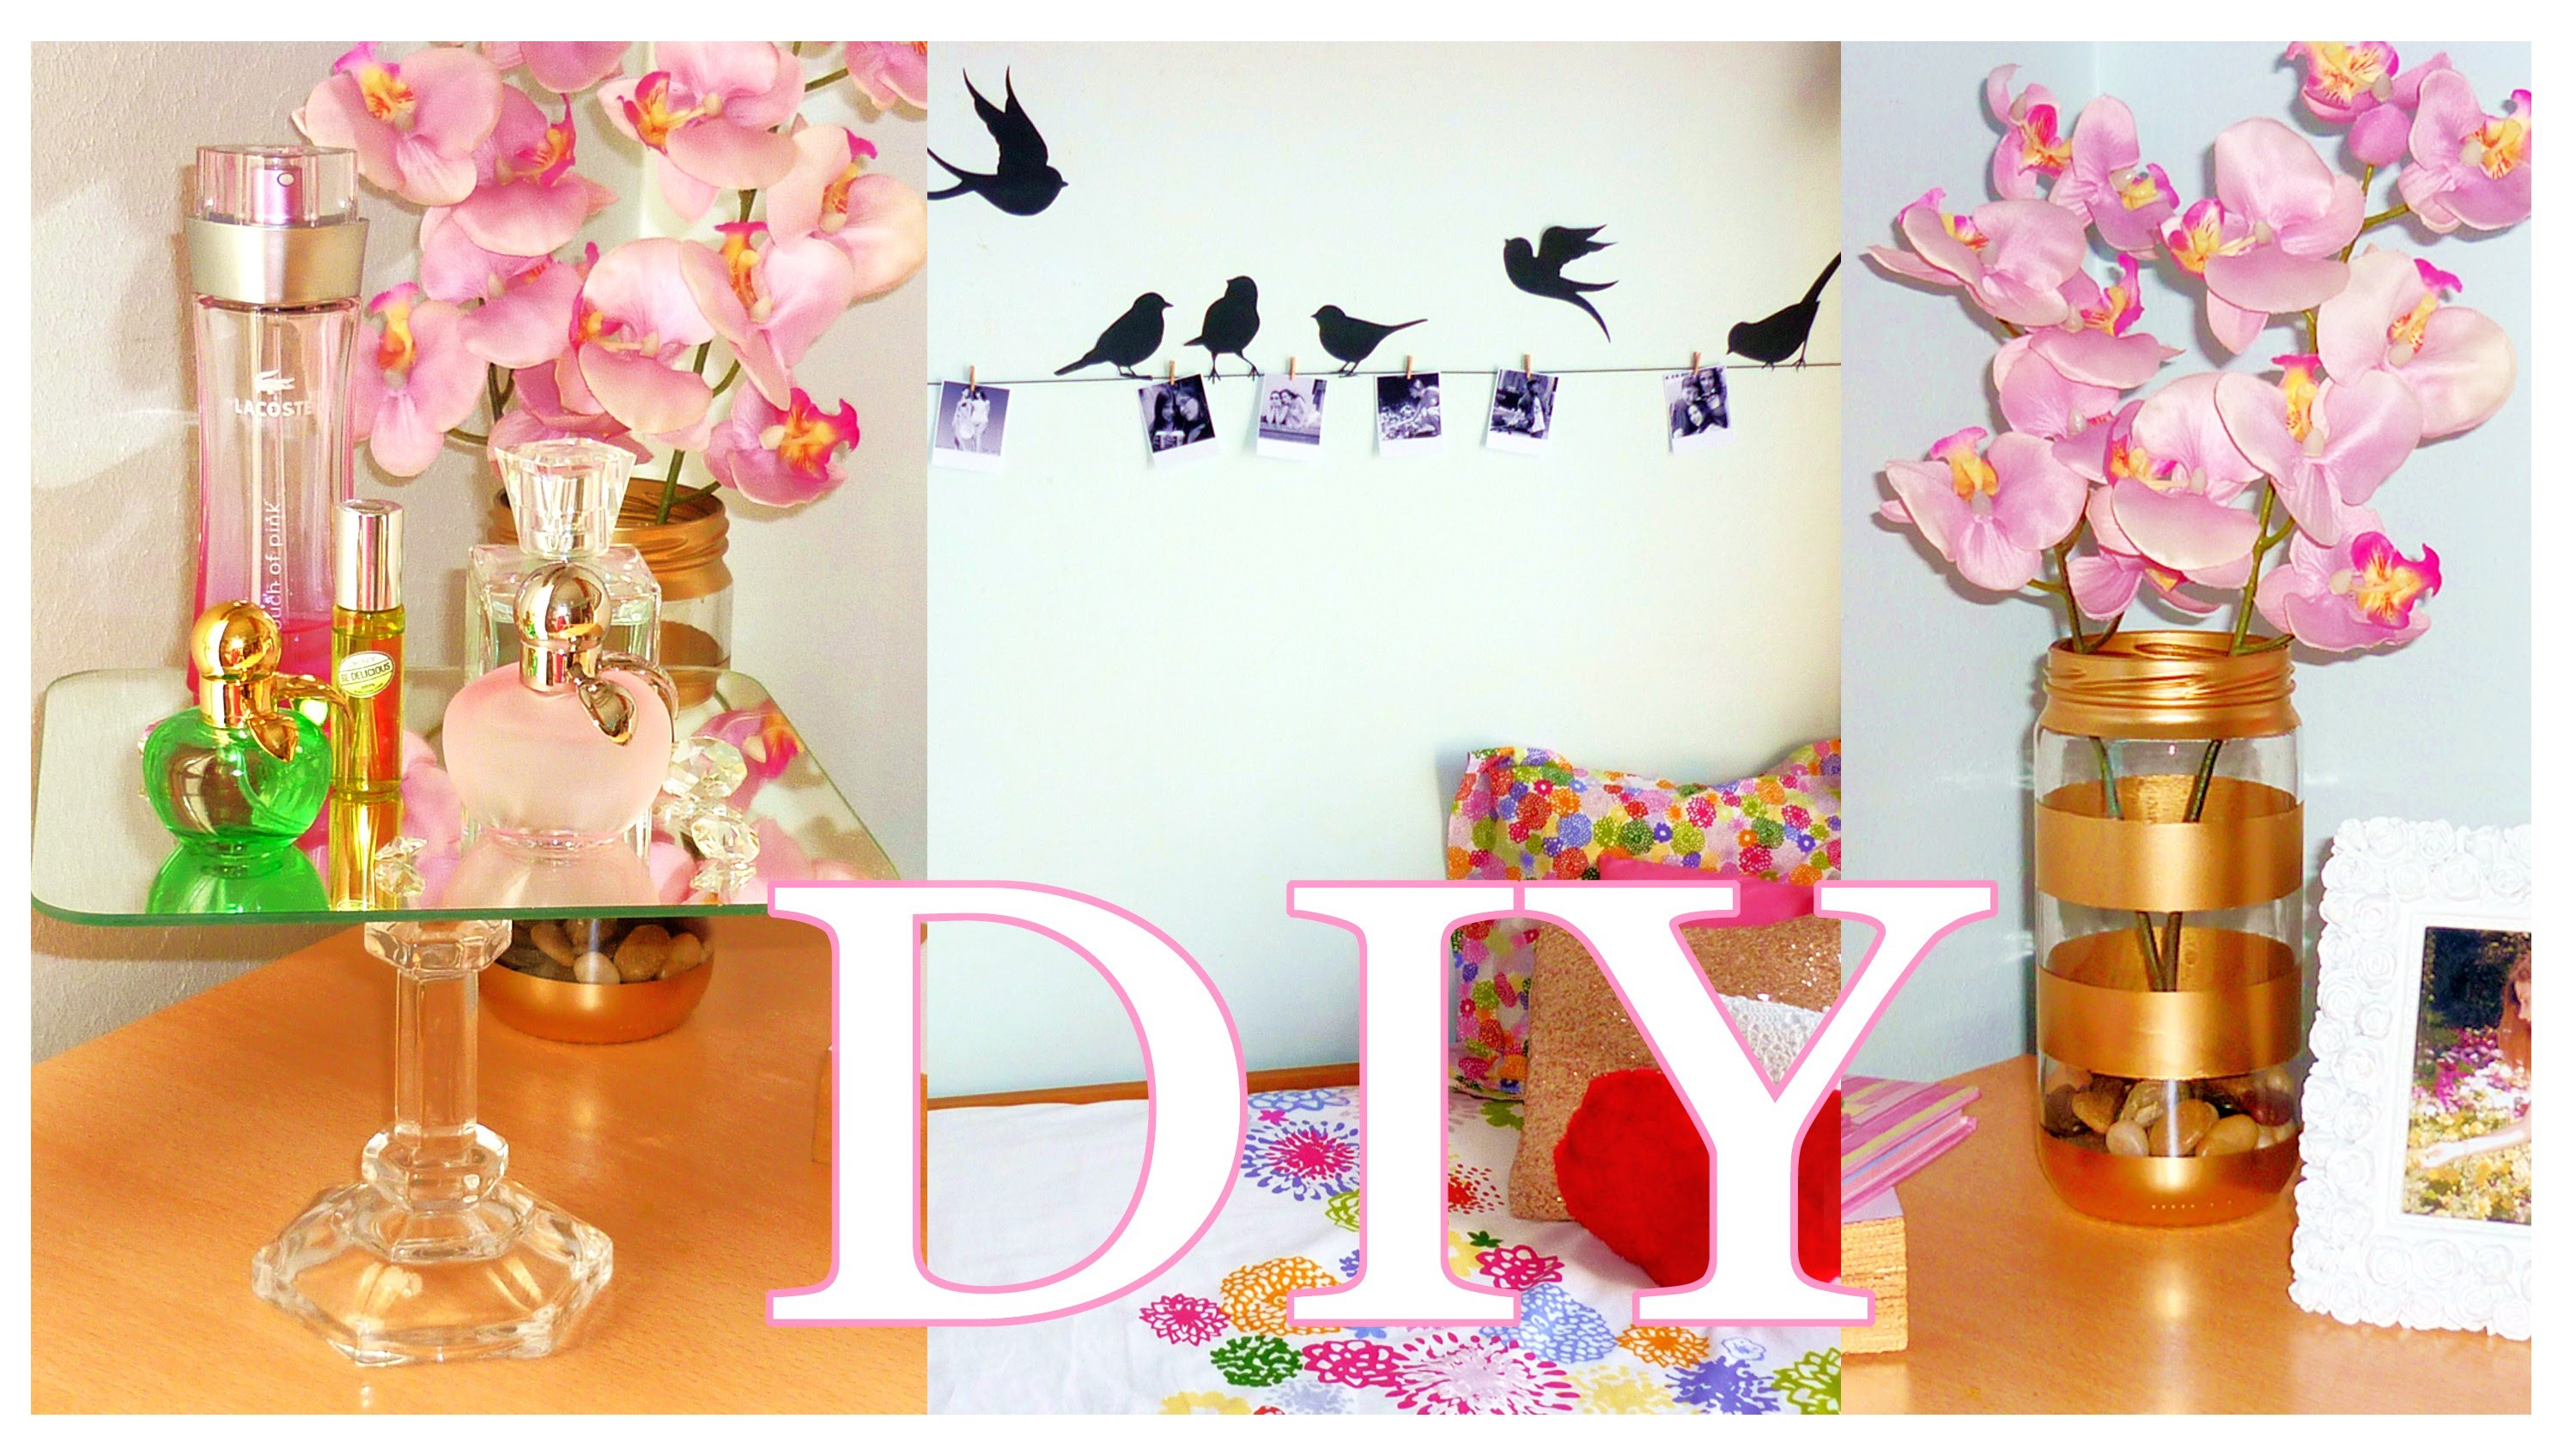 DIY ROOM DECOR – Cheap & cute projects   LOW COST ideas!